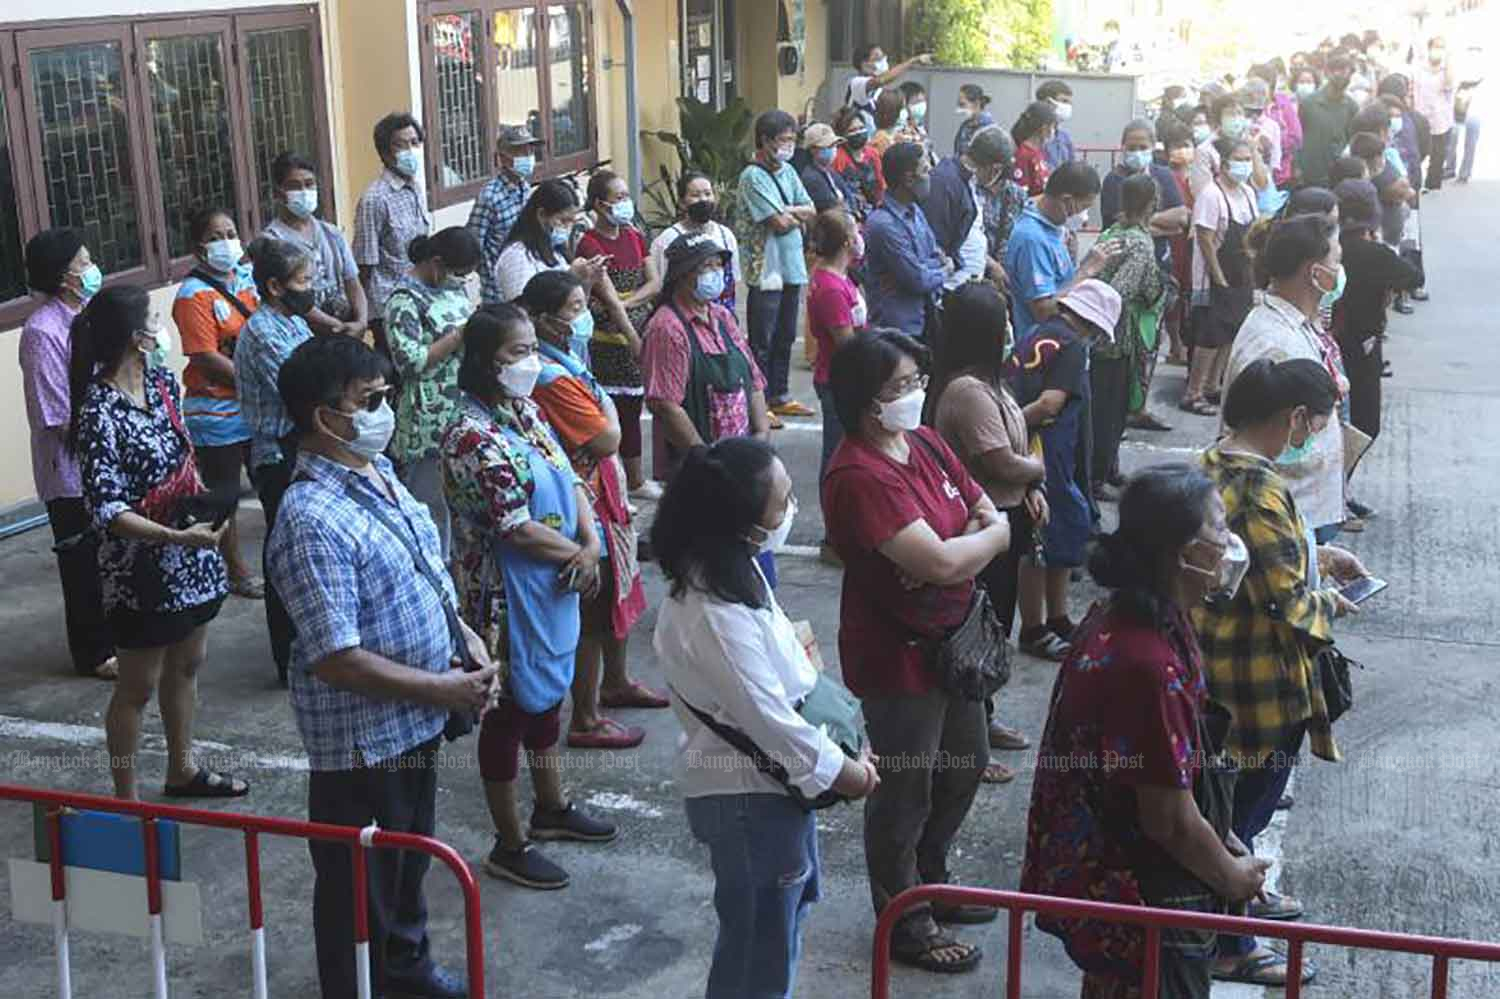 People wait for their Covid-19 test in Pathum Thani province on Tuesday. (Photo: Pattarapong Chatpattarasill)